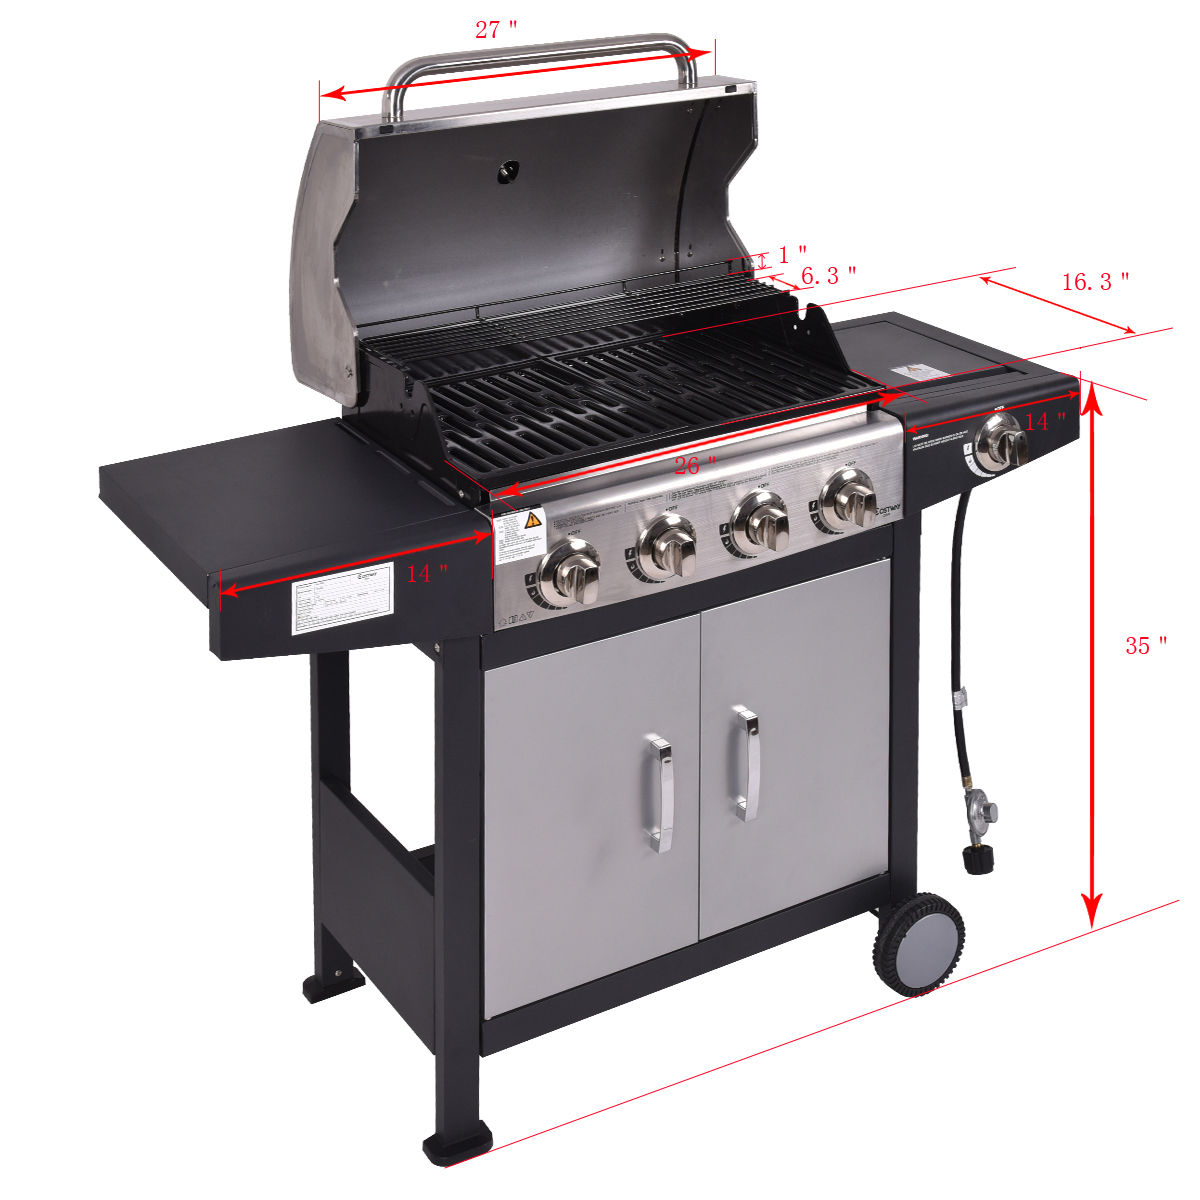 Costway 4 Burner Gas Porpane Grill Stainless Steel Outdoor Patio Cooking BBQ w/ Casters - image 5 of 9